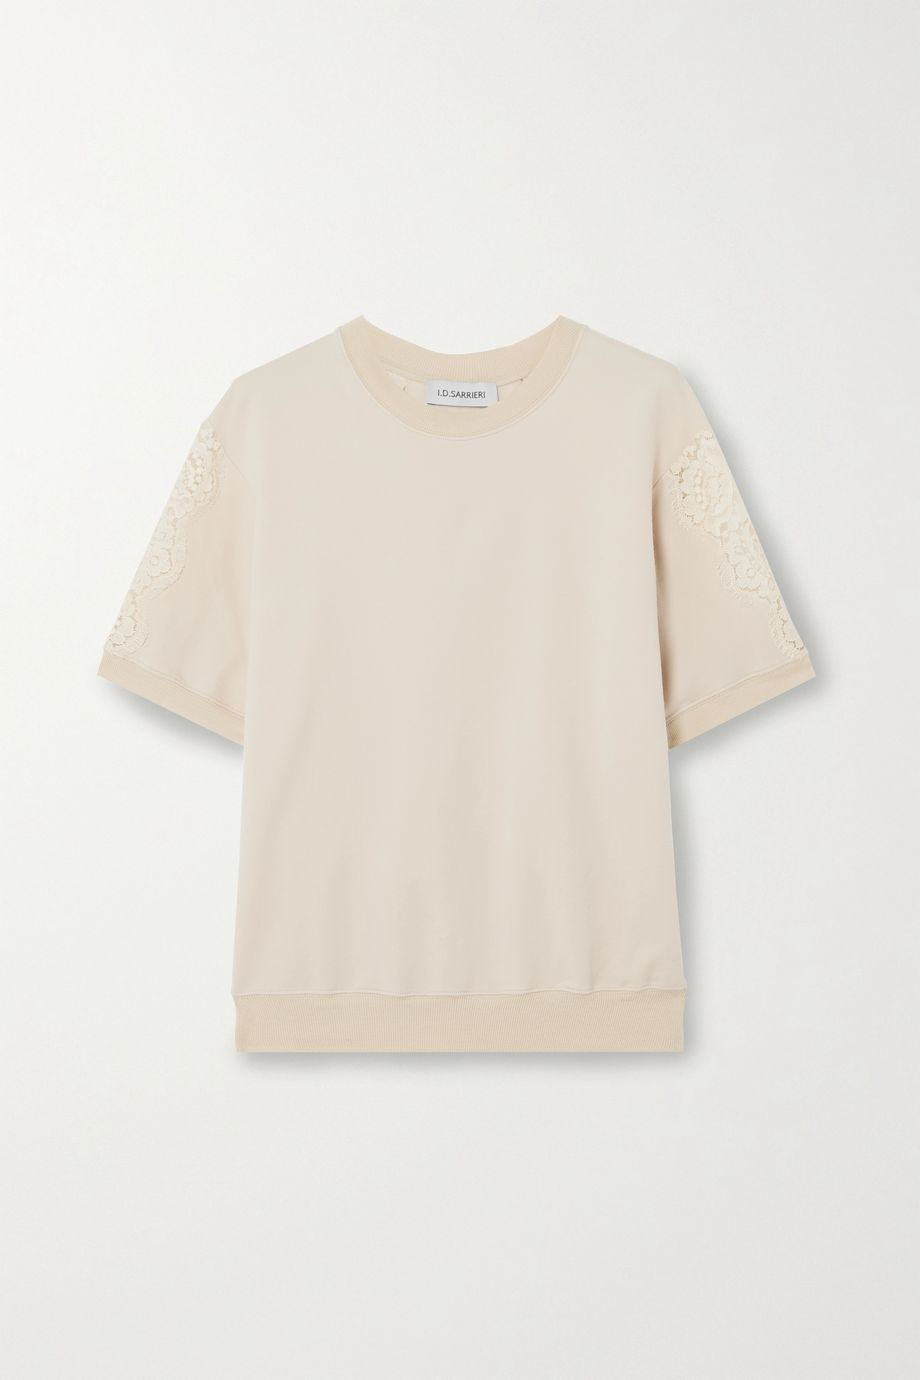 I.D. Sarrieri Lace-paneled cotton-blend jersey top